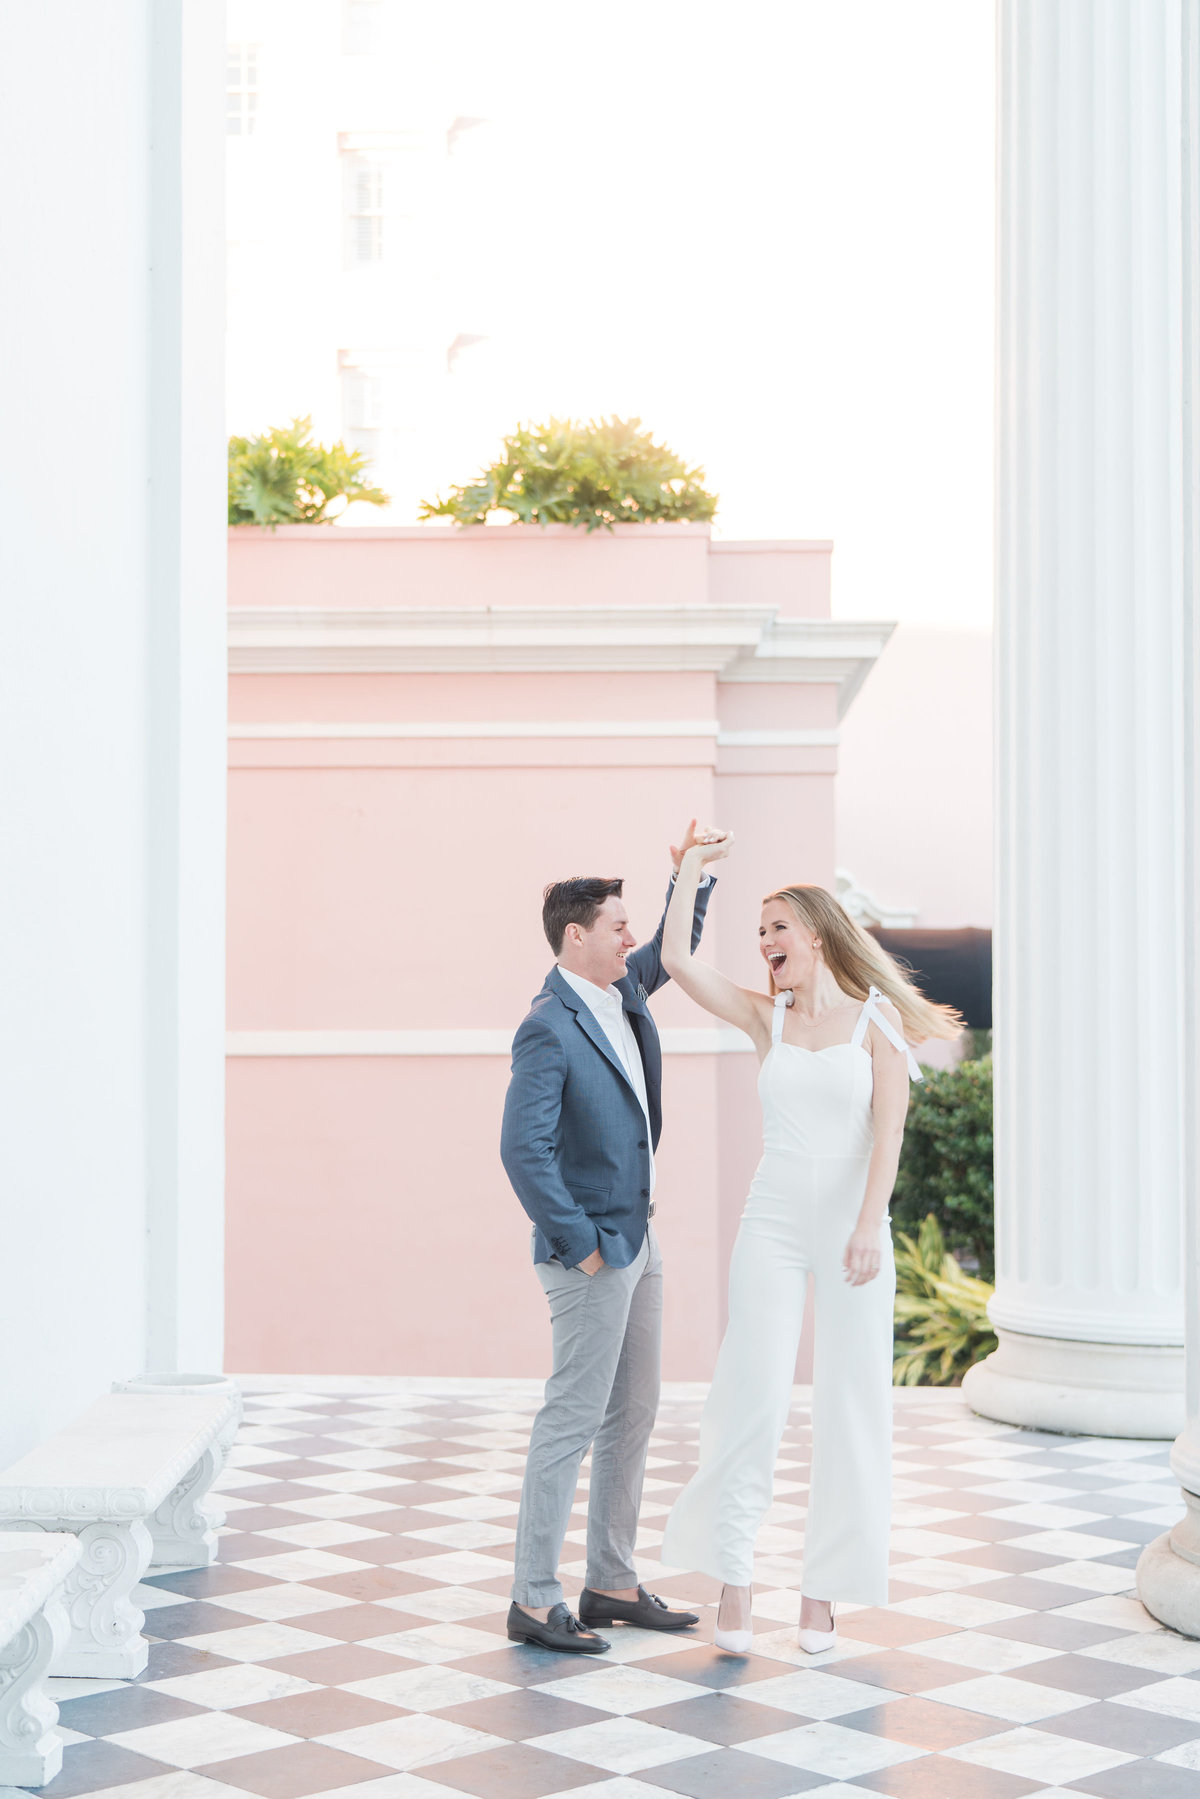 Kate Dye Photography Wedding Engagement Lifestyle Charleston South Carolina Photographer Bright Airy Colorful4